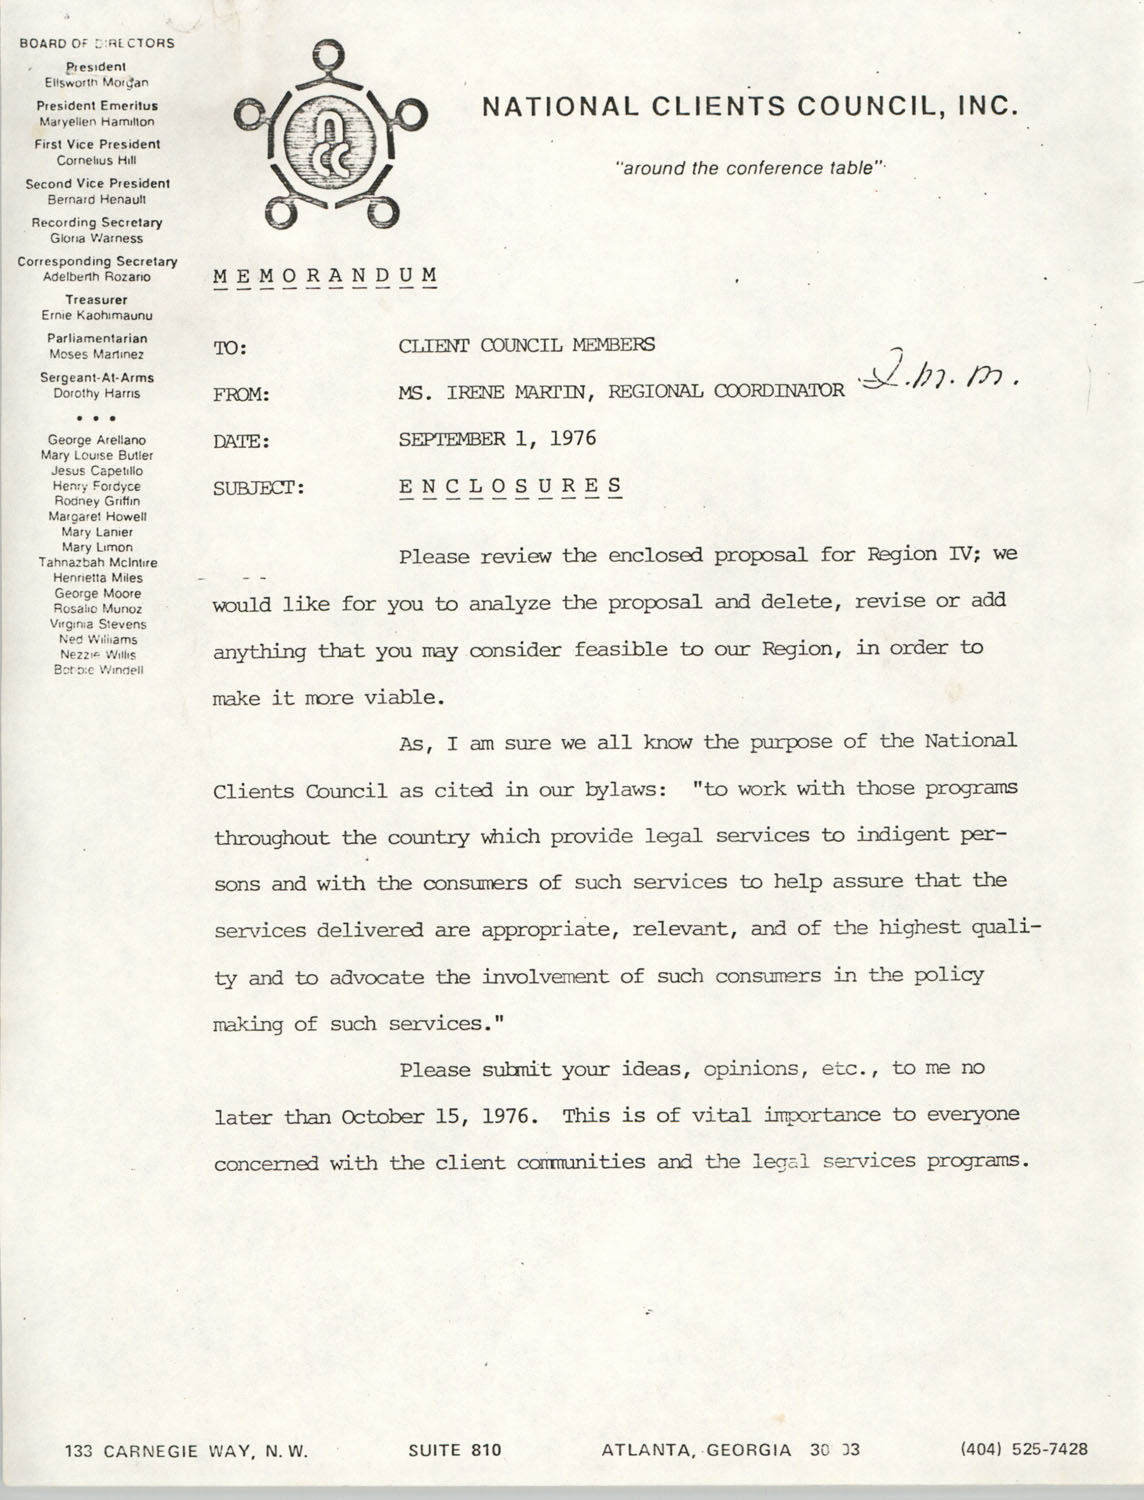 Memorandum from Irene Martin to Client Council Members, National Clients Council, September 1, 1976